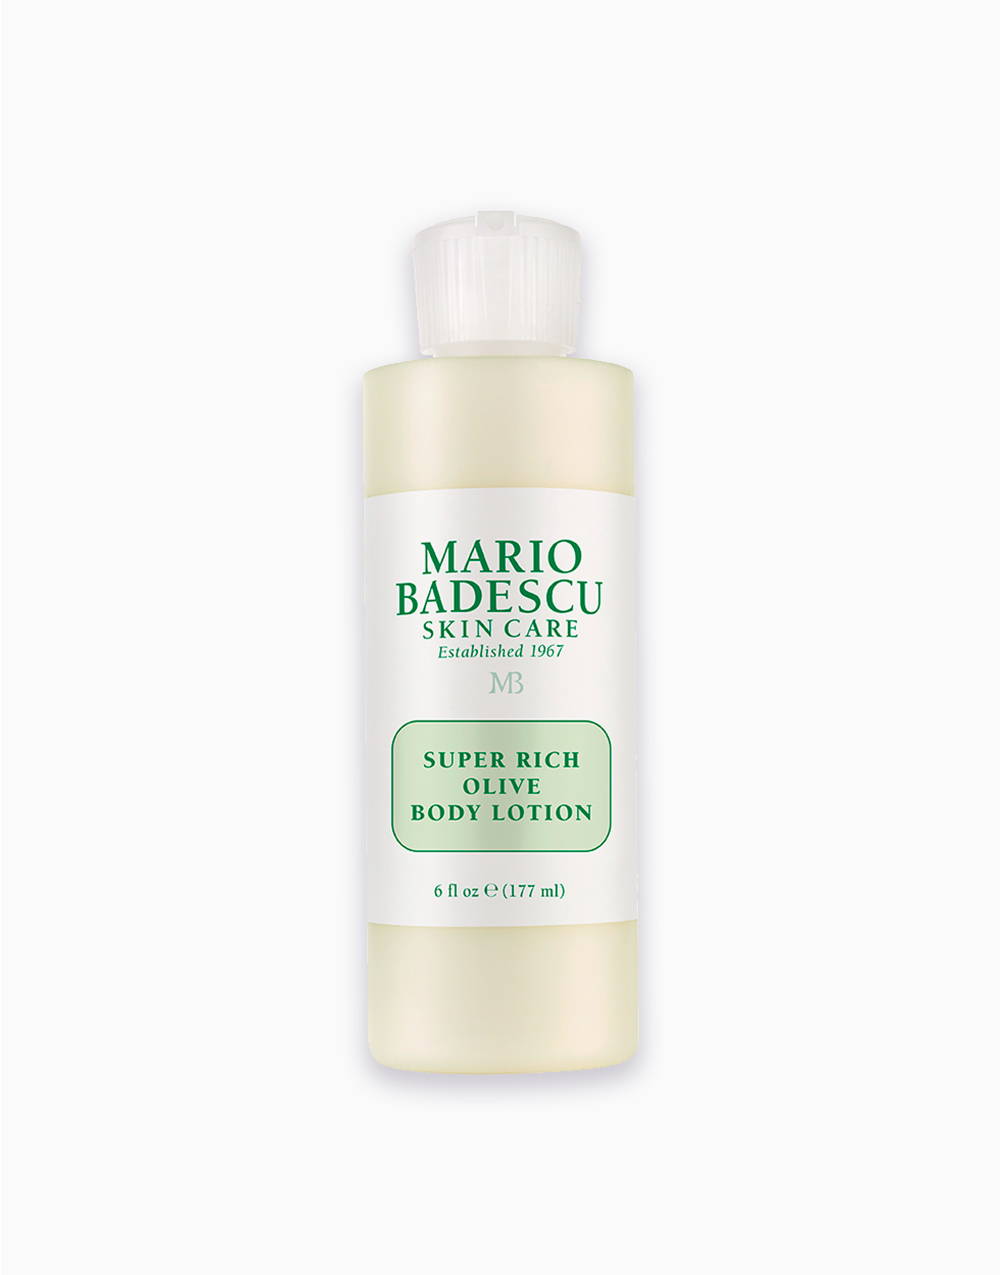 Super Rich Olive Body Lotion (6oz) by Mario Badescu